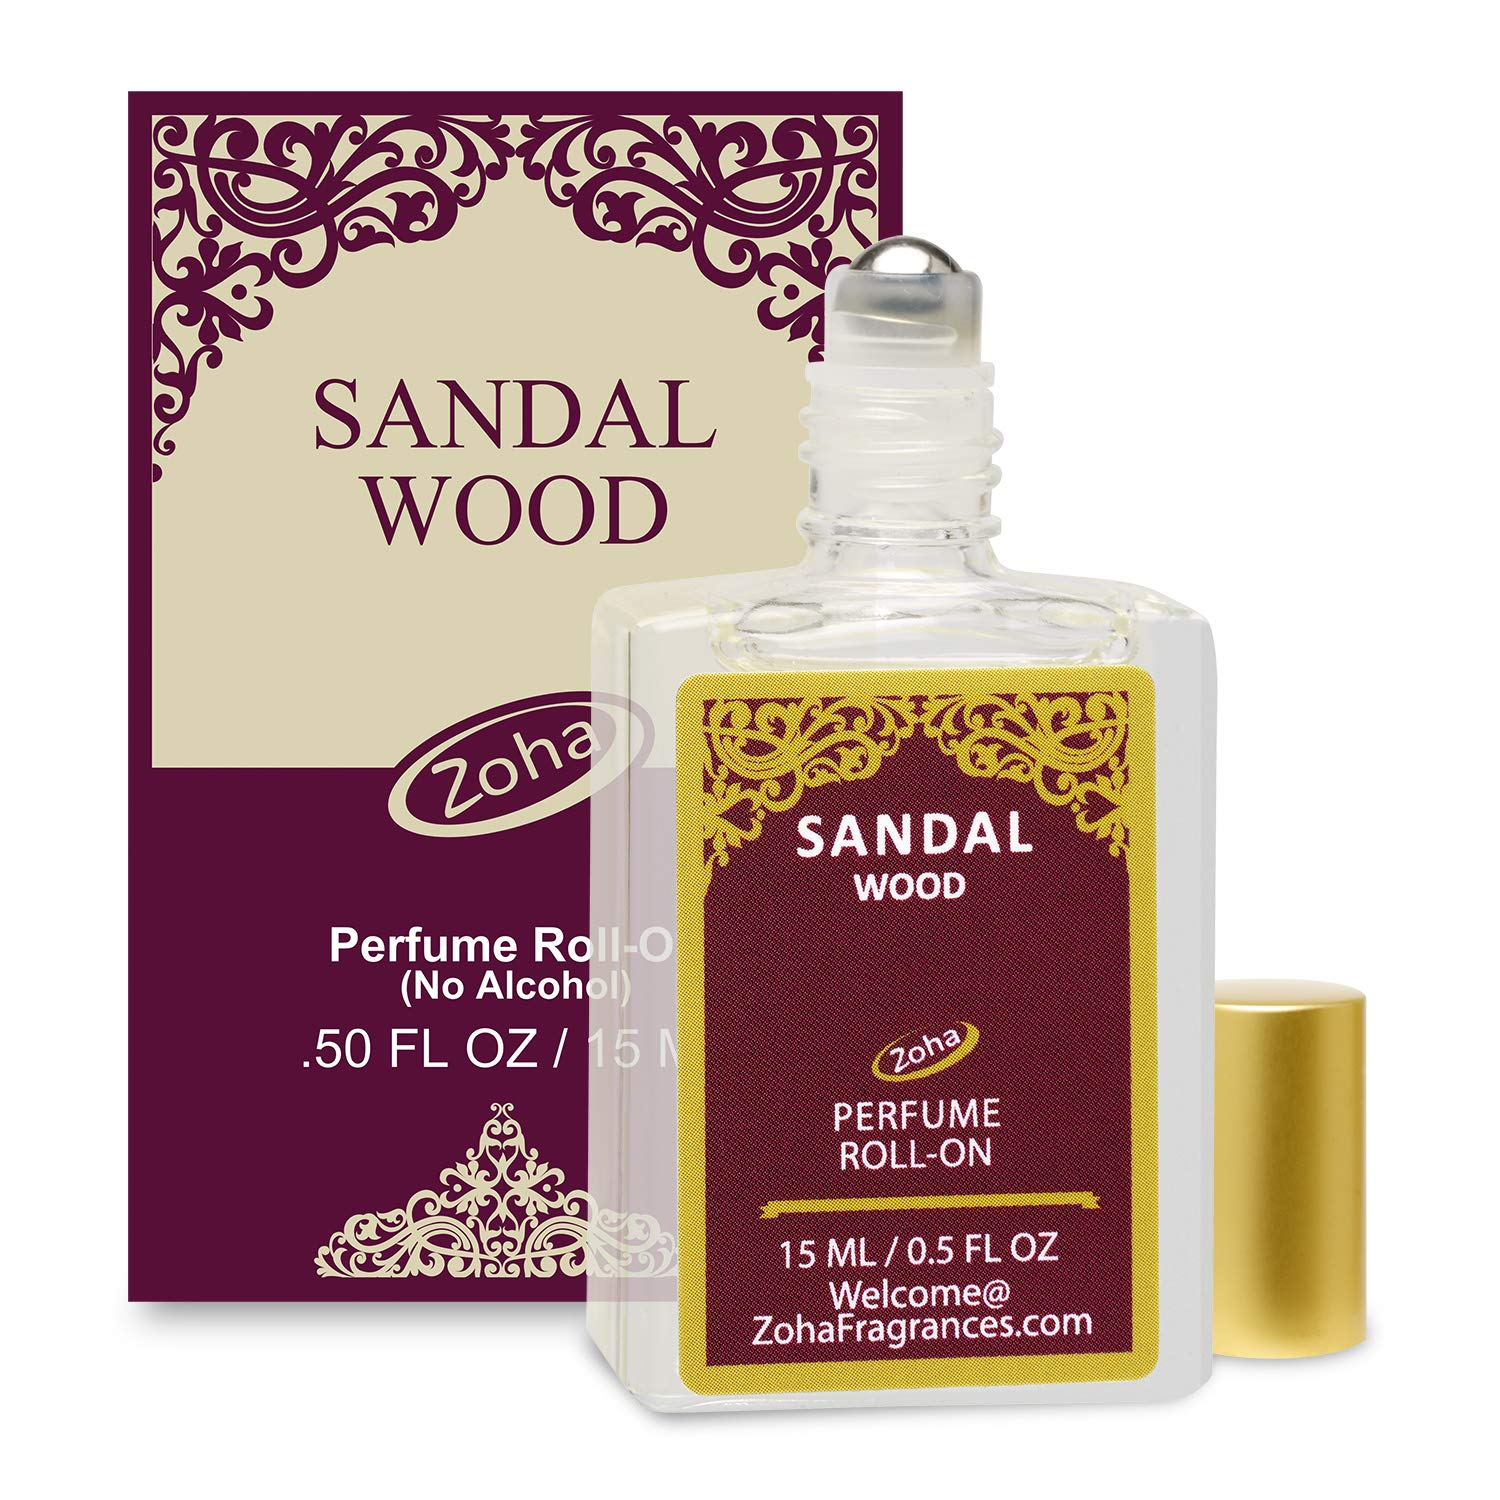 Sandalwood Perfume Oil Roll-On (No Alcohol) - Essential Oils and Clean Beauty Hypoallergenic Vegan Perfumes for Women and Men by Zoha Fragrances, 15 ml / 0.50 fl Oz